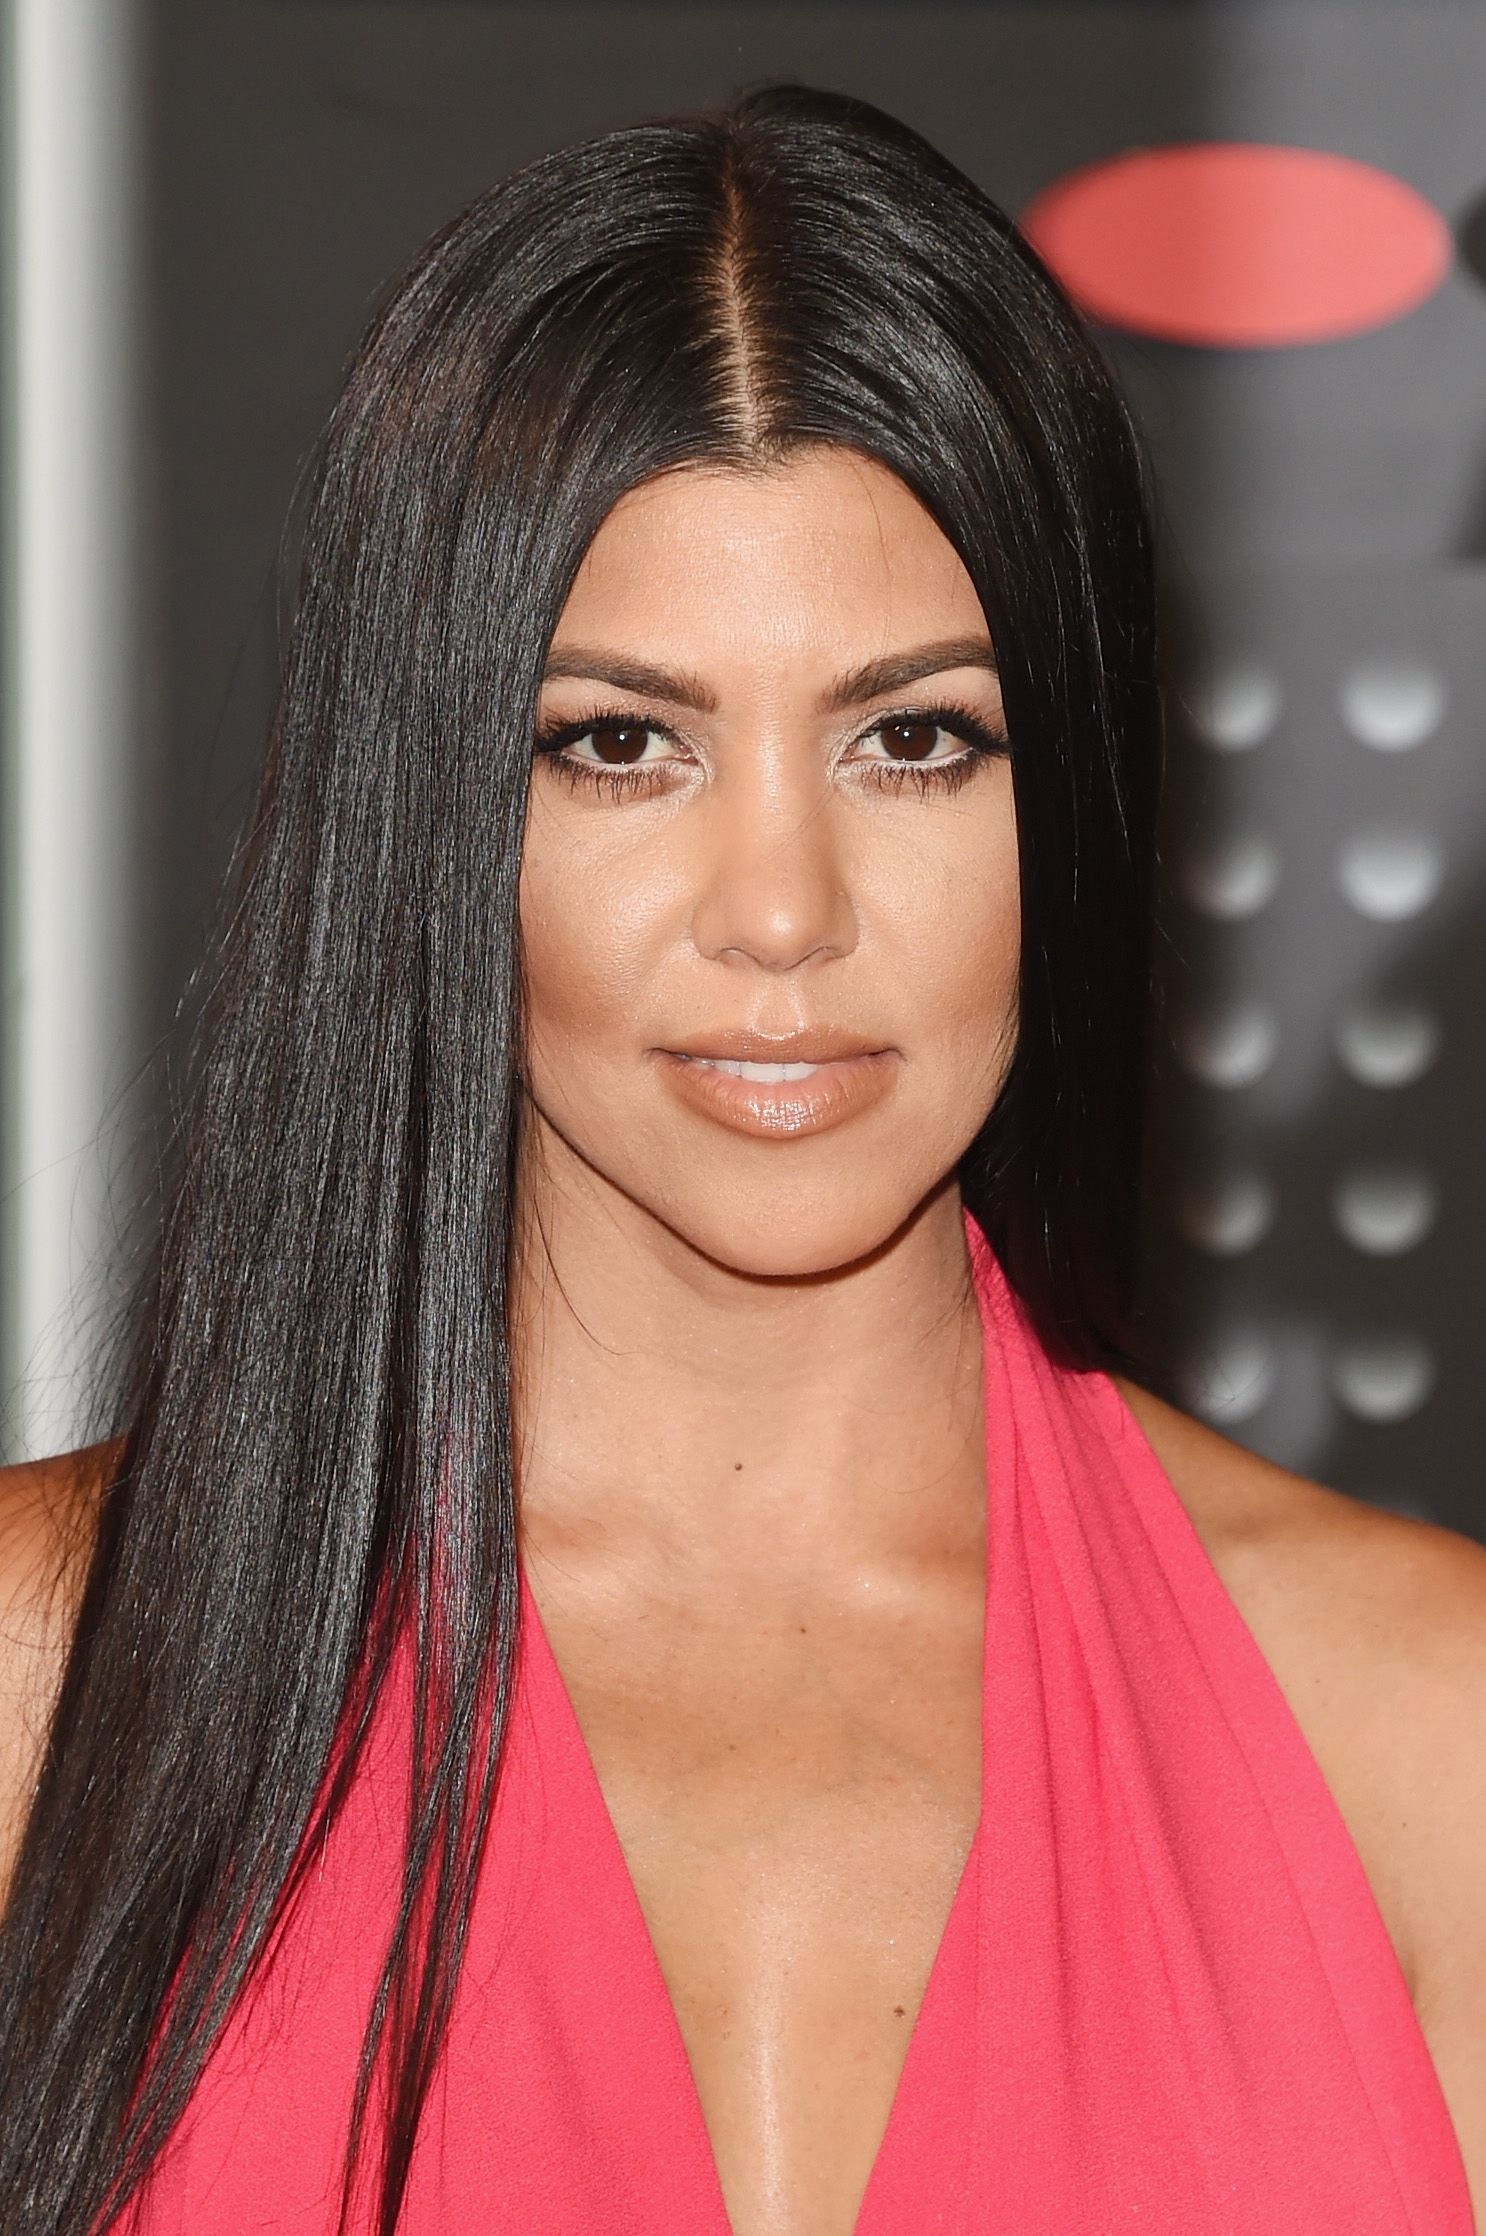 Is Scott Disick Forcing Kourtney to Leave Keeping Up with the Kardashians